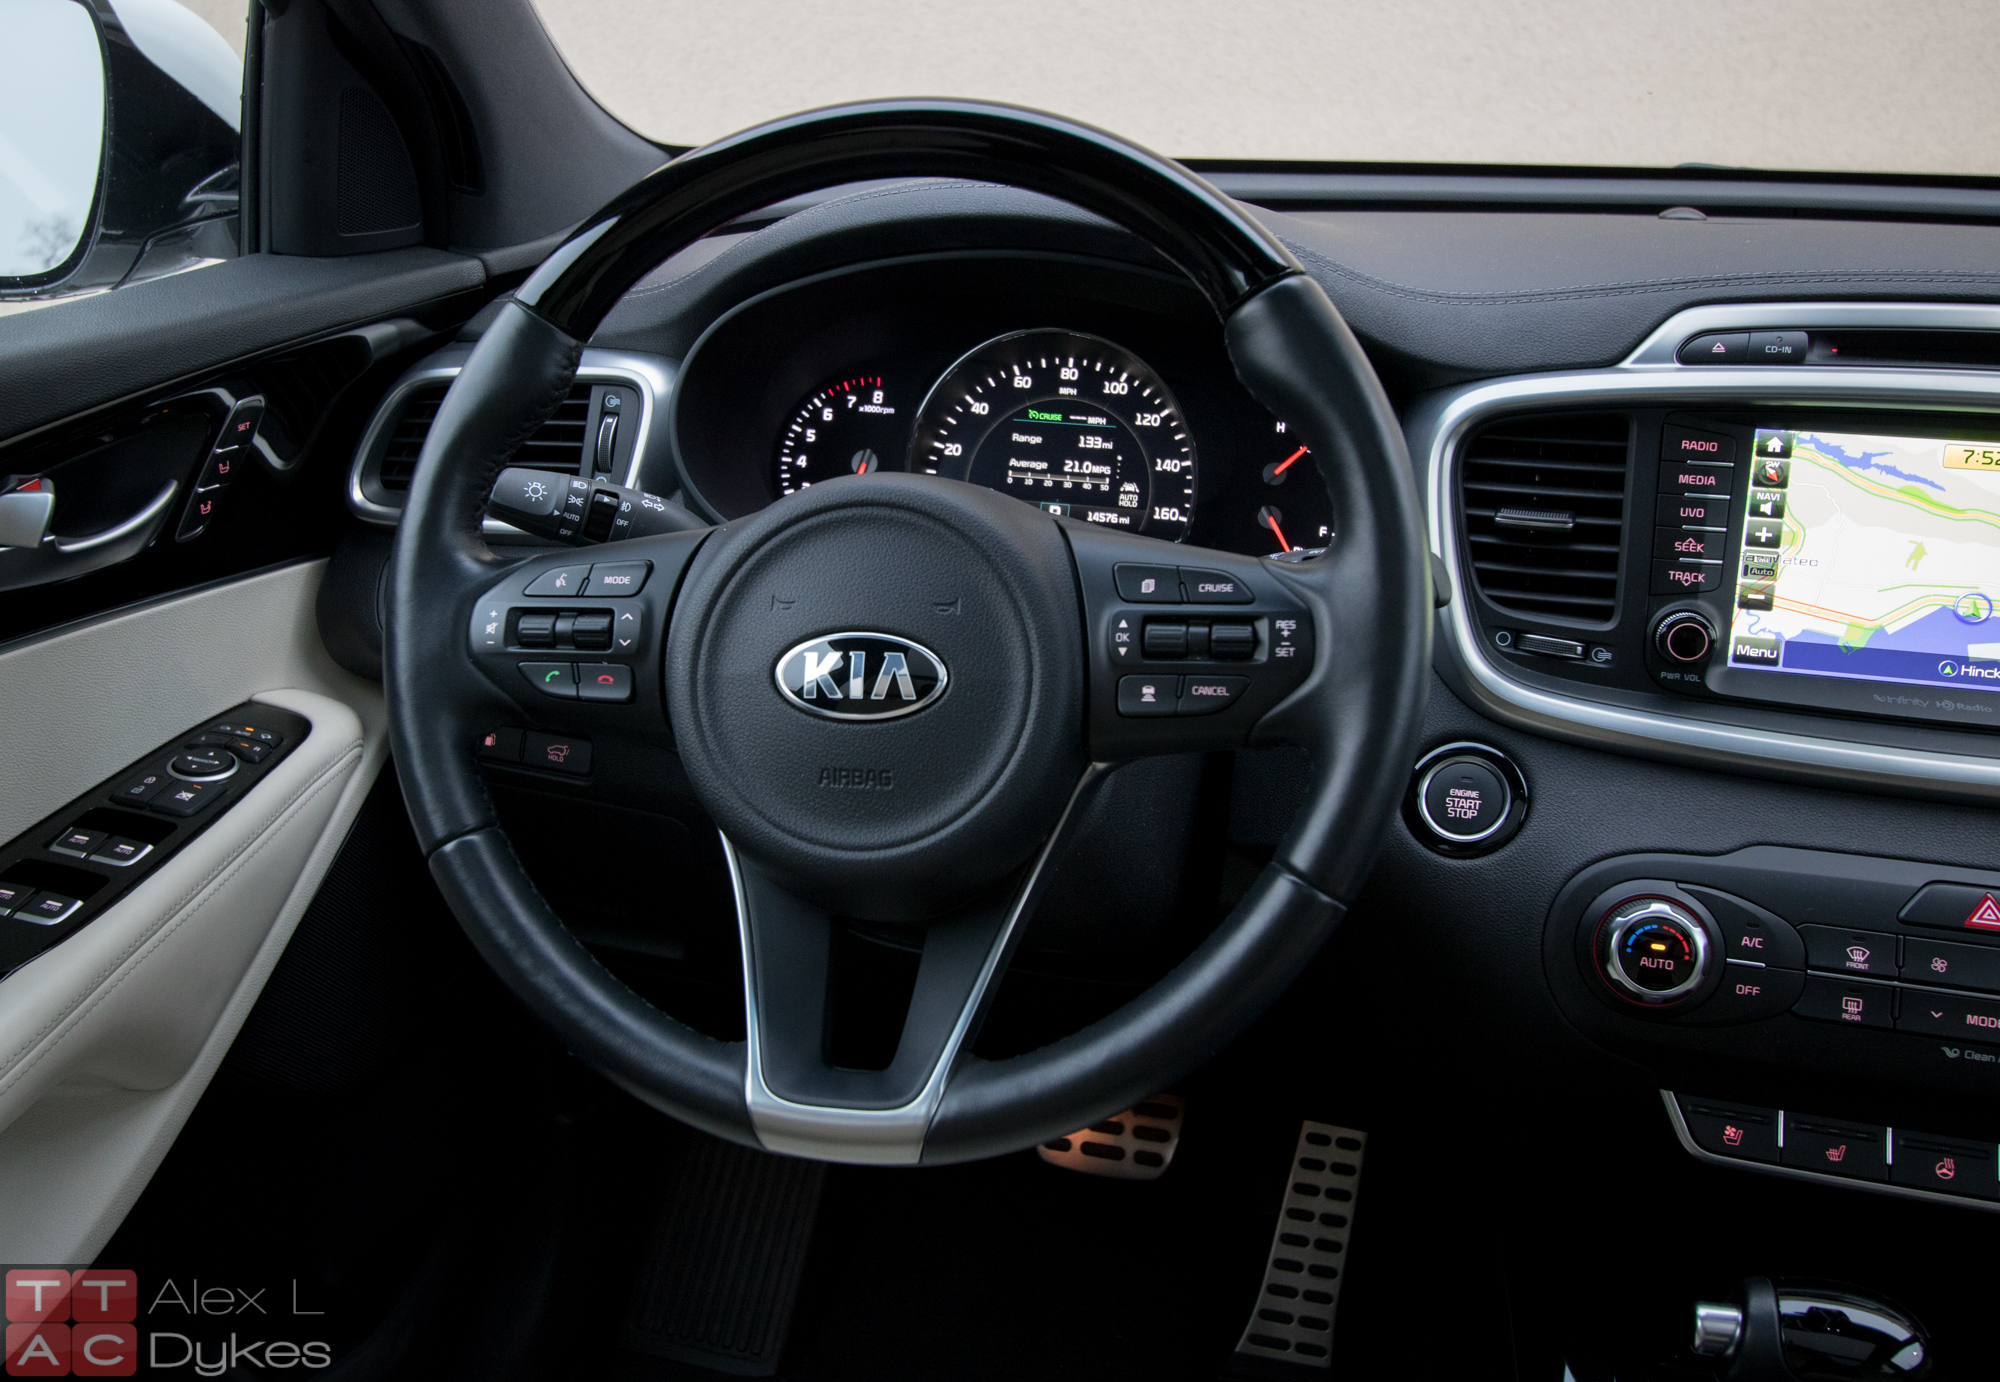 2016 Kia Sorento Limited Interior 007 The Truth About Cars